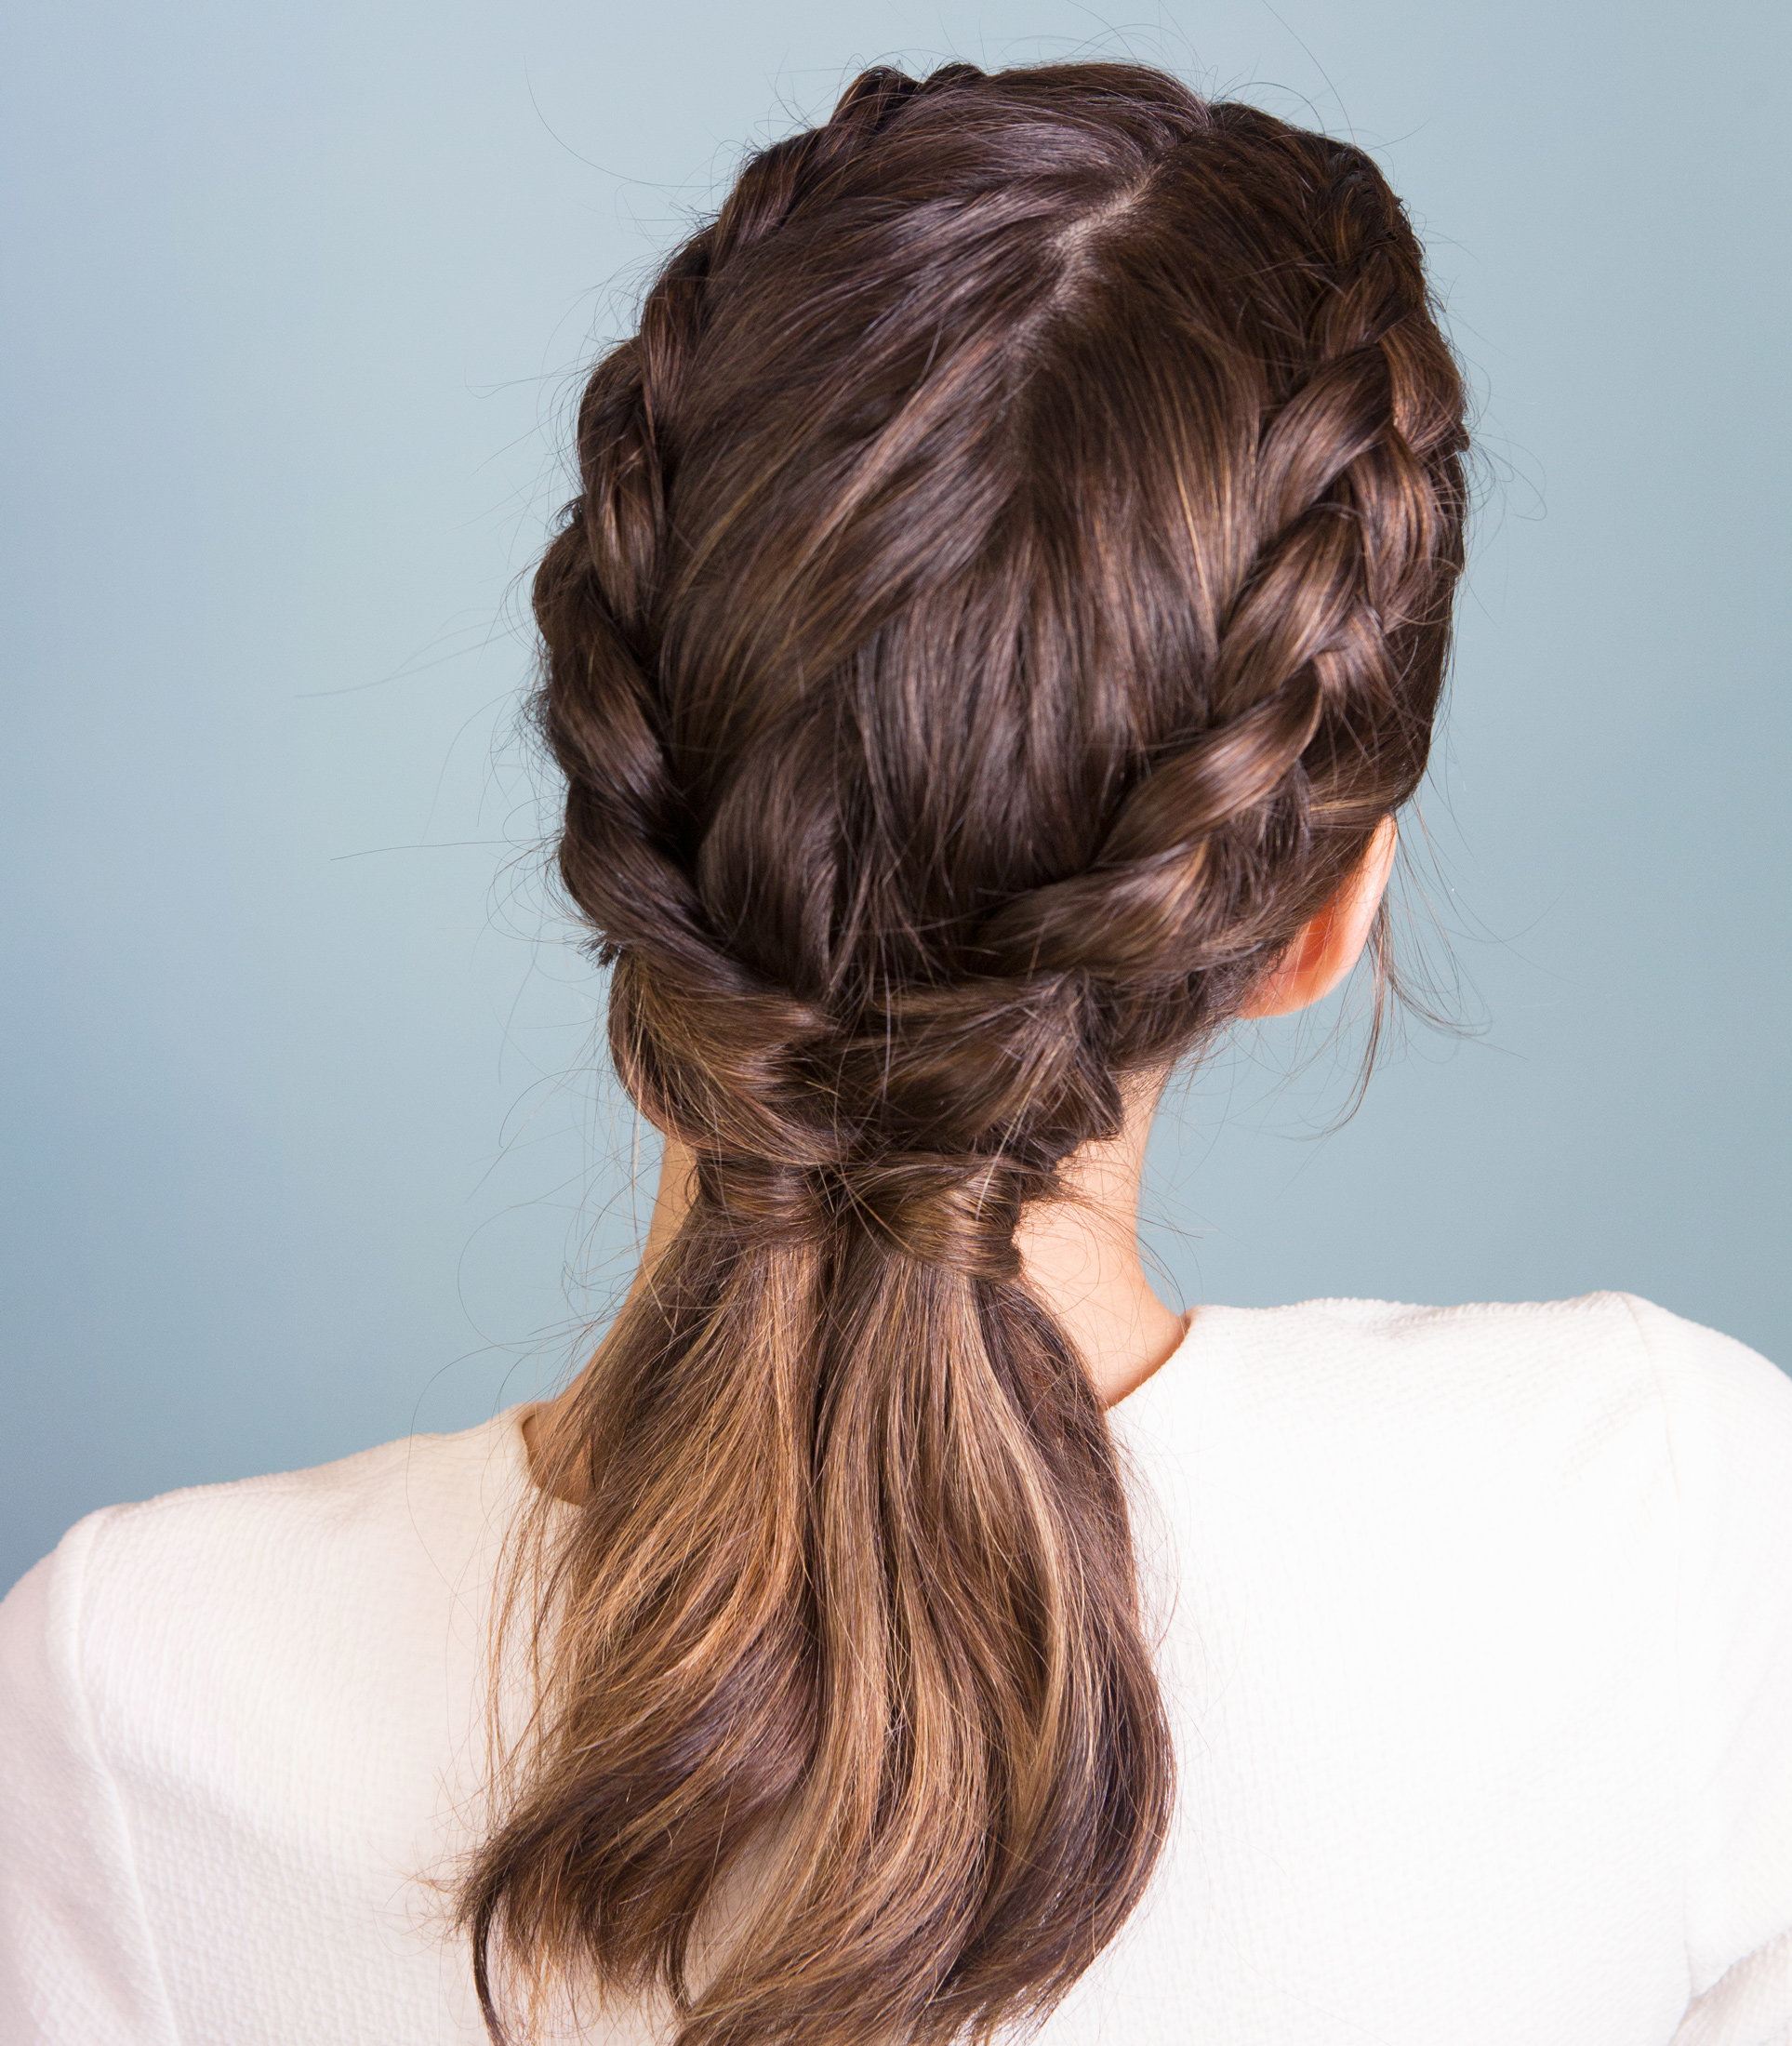 Braid Gif - Boxer Braids EMBED